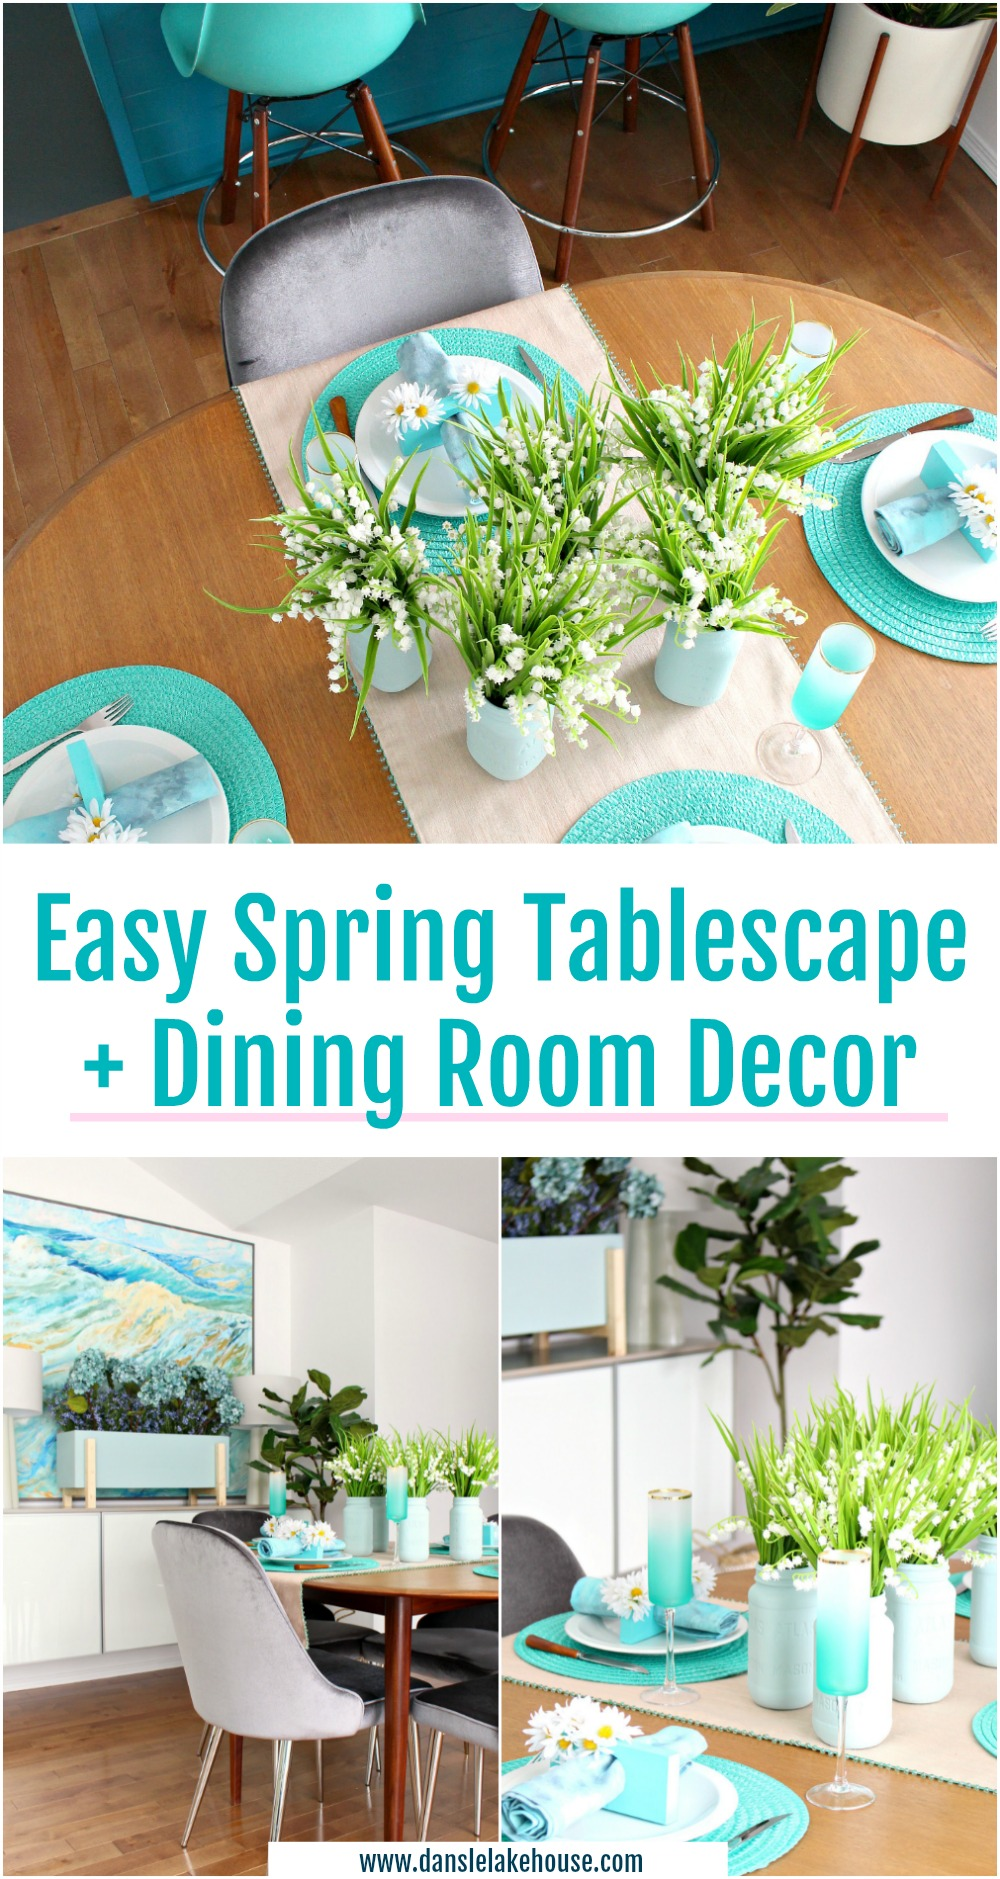 Easy Spring Tablescape and Dining Room Decor. DIY Spring Home Decor Ideas. #springdecor #diyspring #homedecor